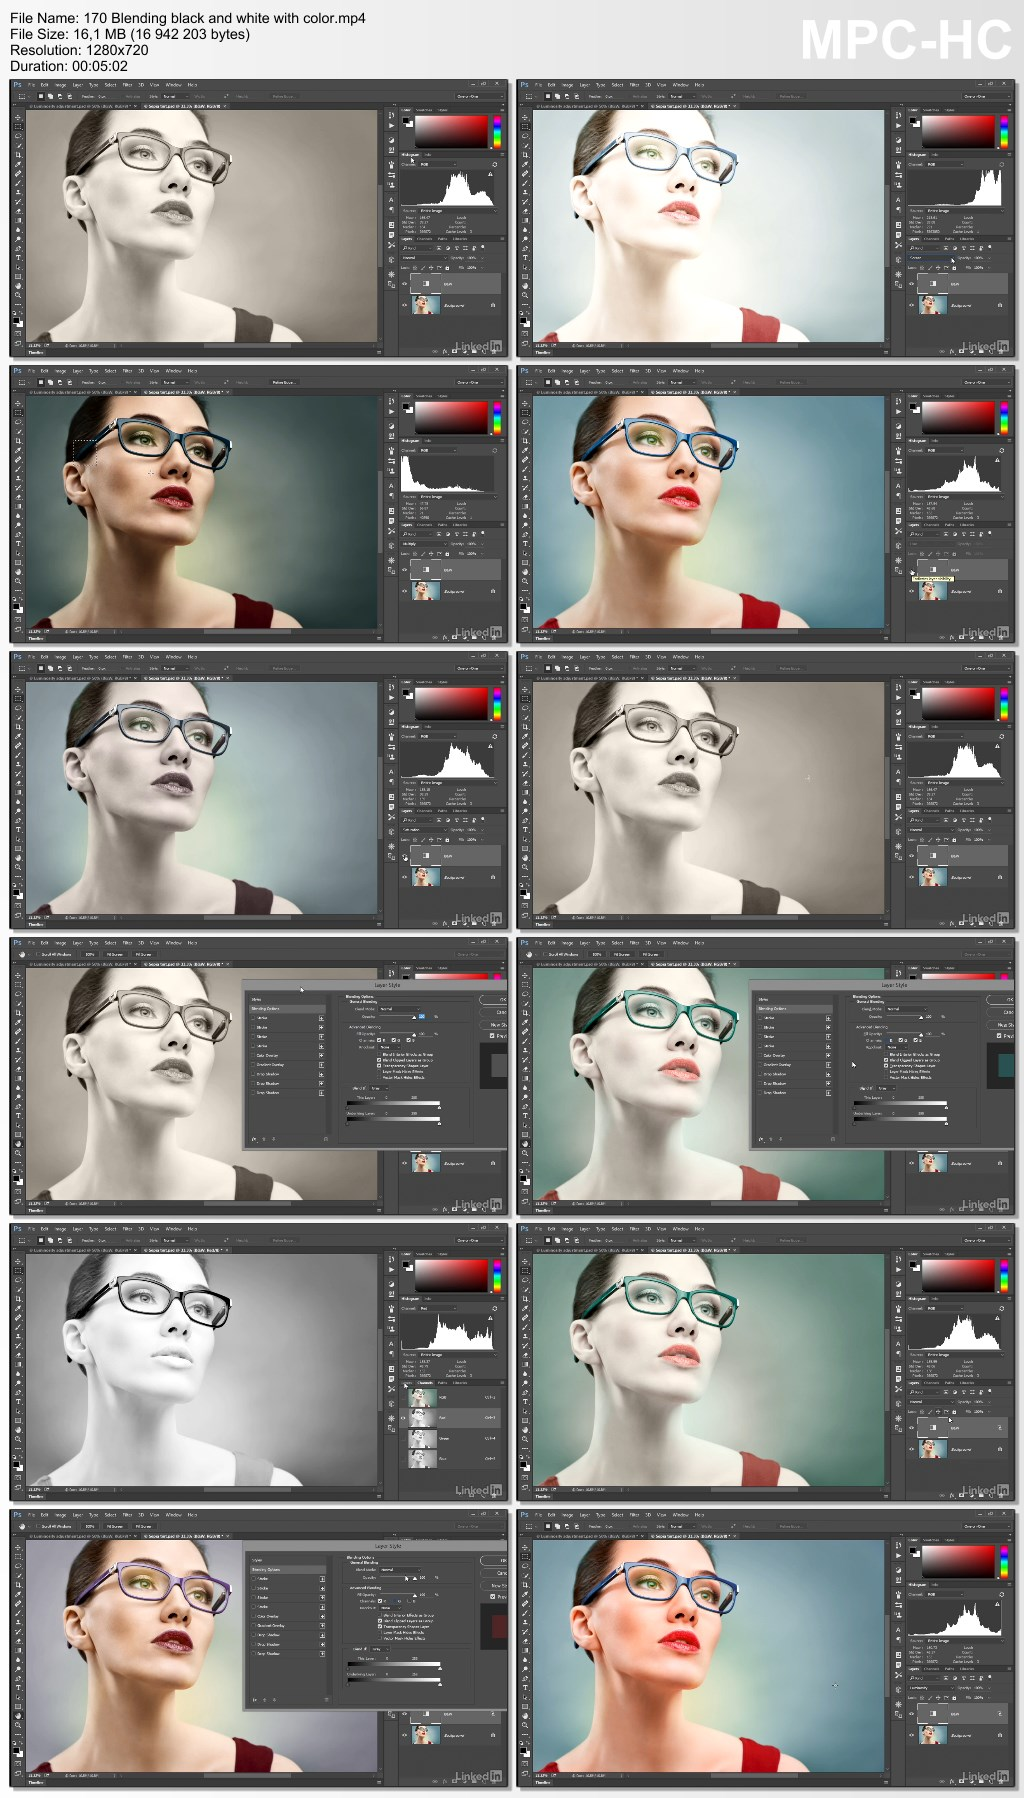 Lynda - Photoshop CC 2015 One-on-One: Advanced (updated Aug 15, 2016)